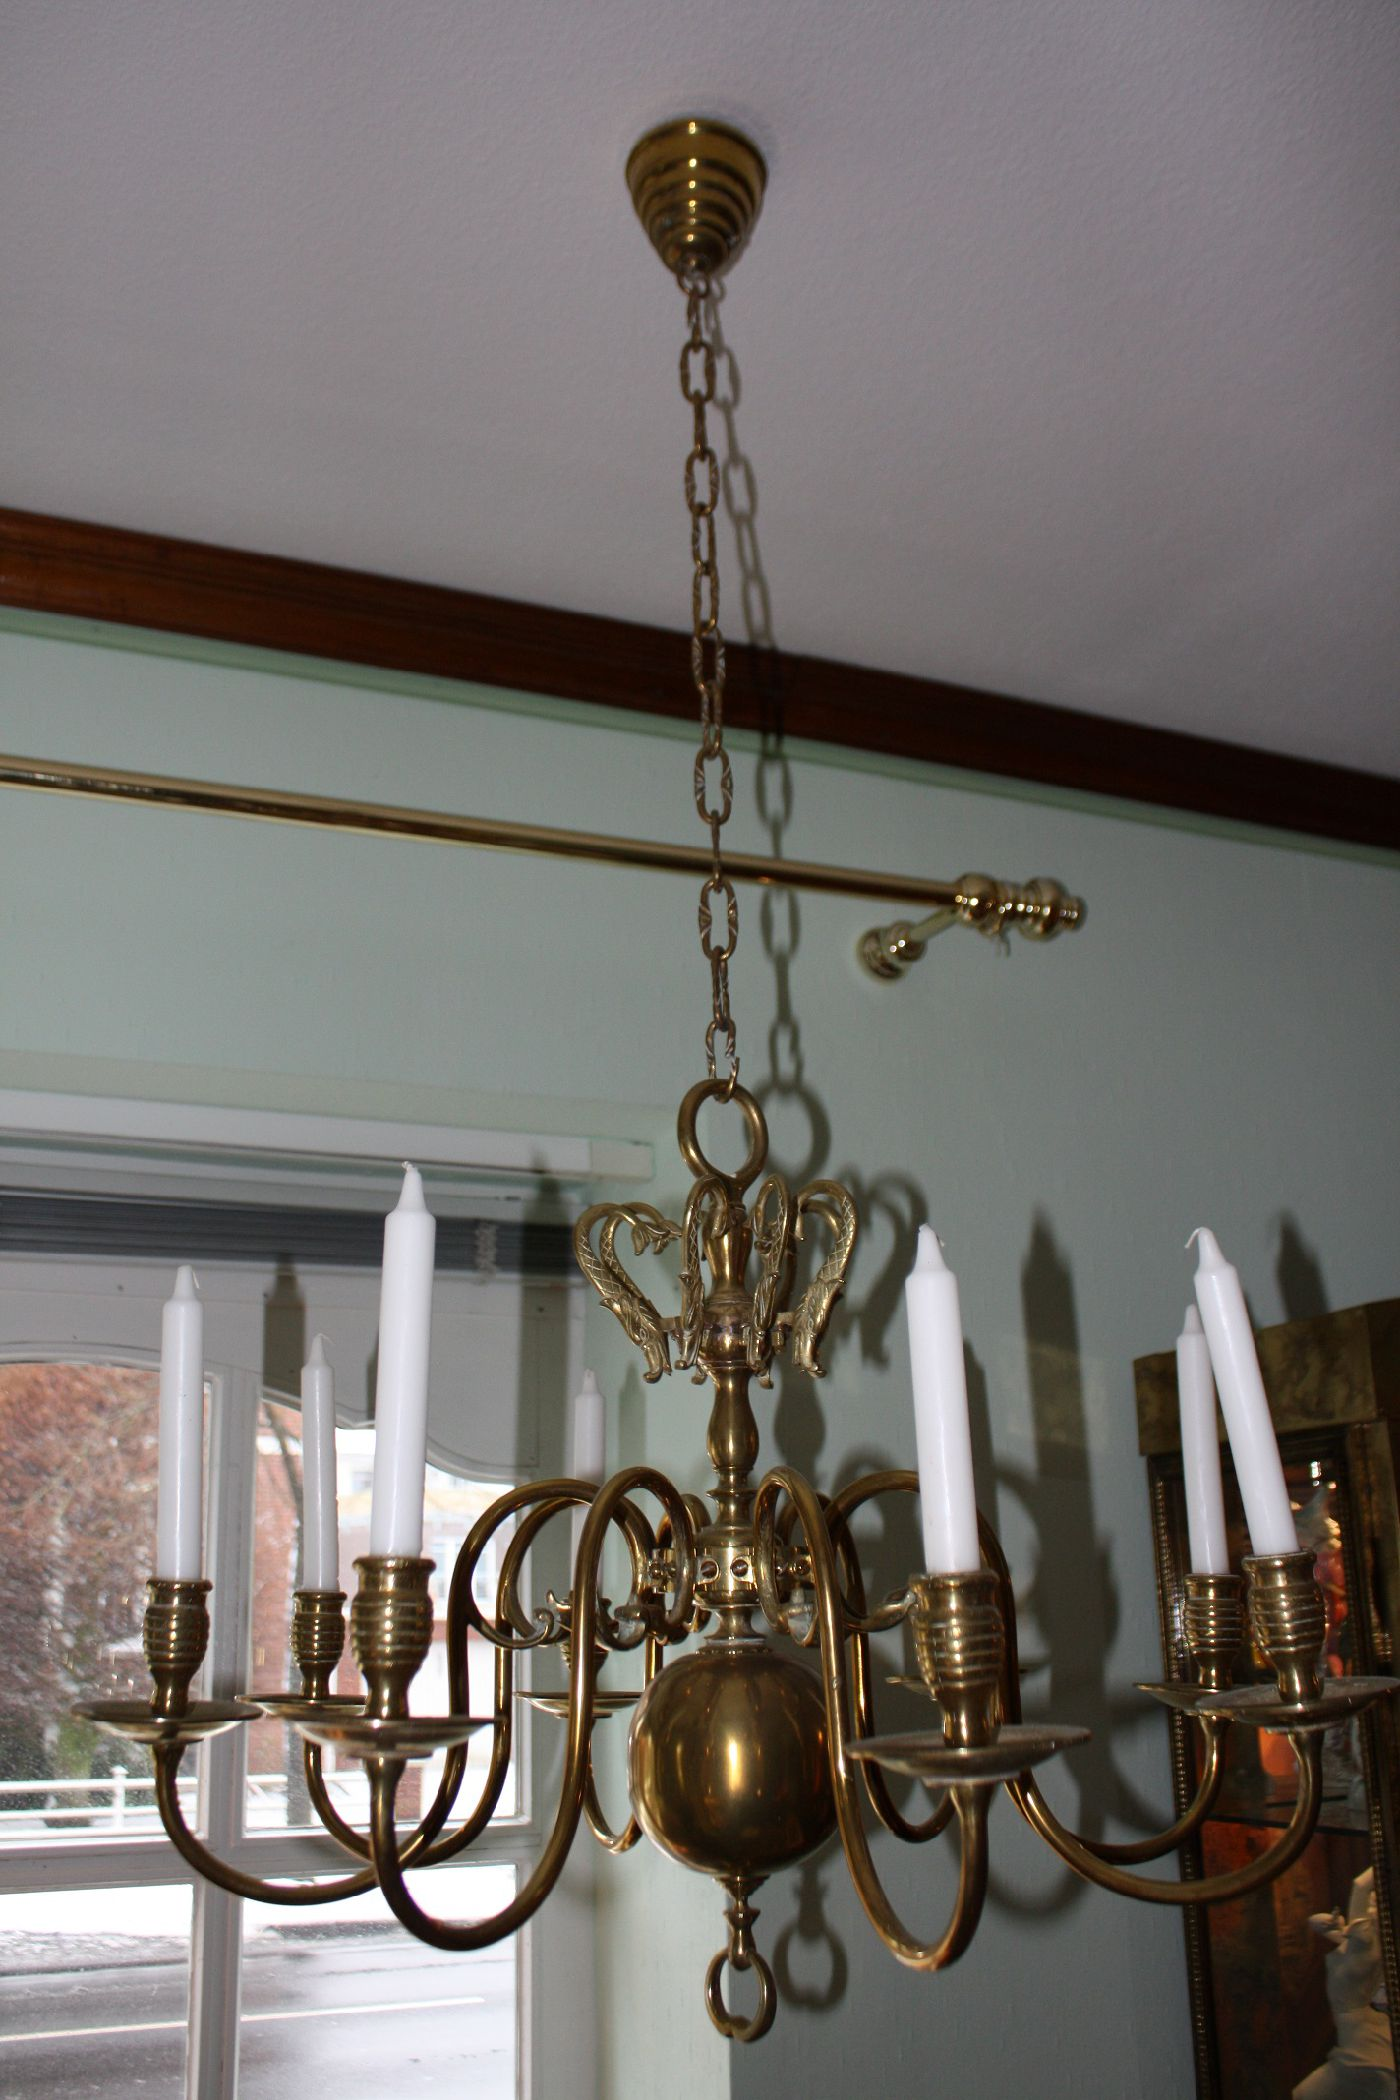 A 19th century flamish or dutch all brass antique chandelier with 8 arms, electrified in the 20th century, in doing so they changed the position of the arms downwards and left the original 8 holders in form of brass fish figurines Size: Diameter: 28.35'' (72 cm)